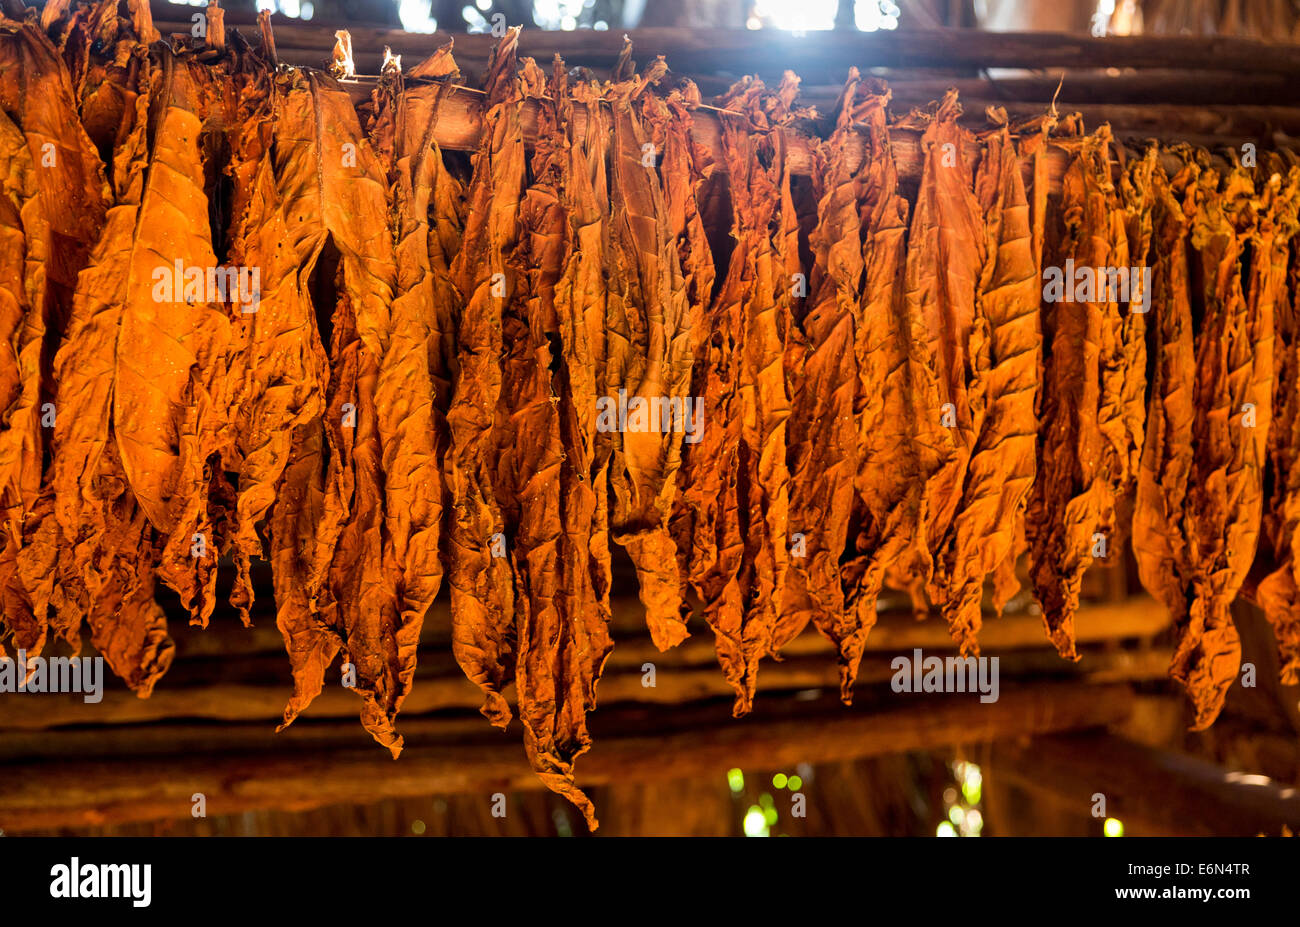 tobacco leaves drying in a barn, Vinales, Western Cuba - Stock Image